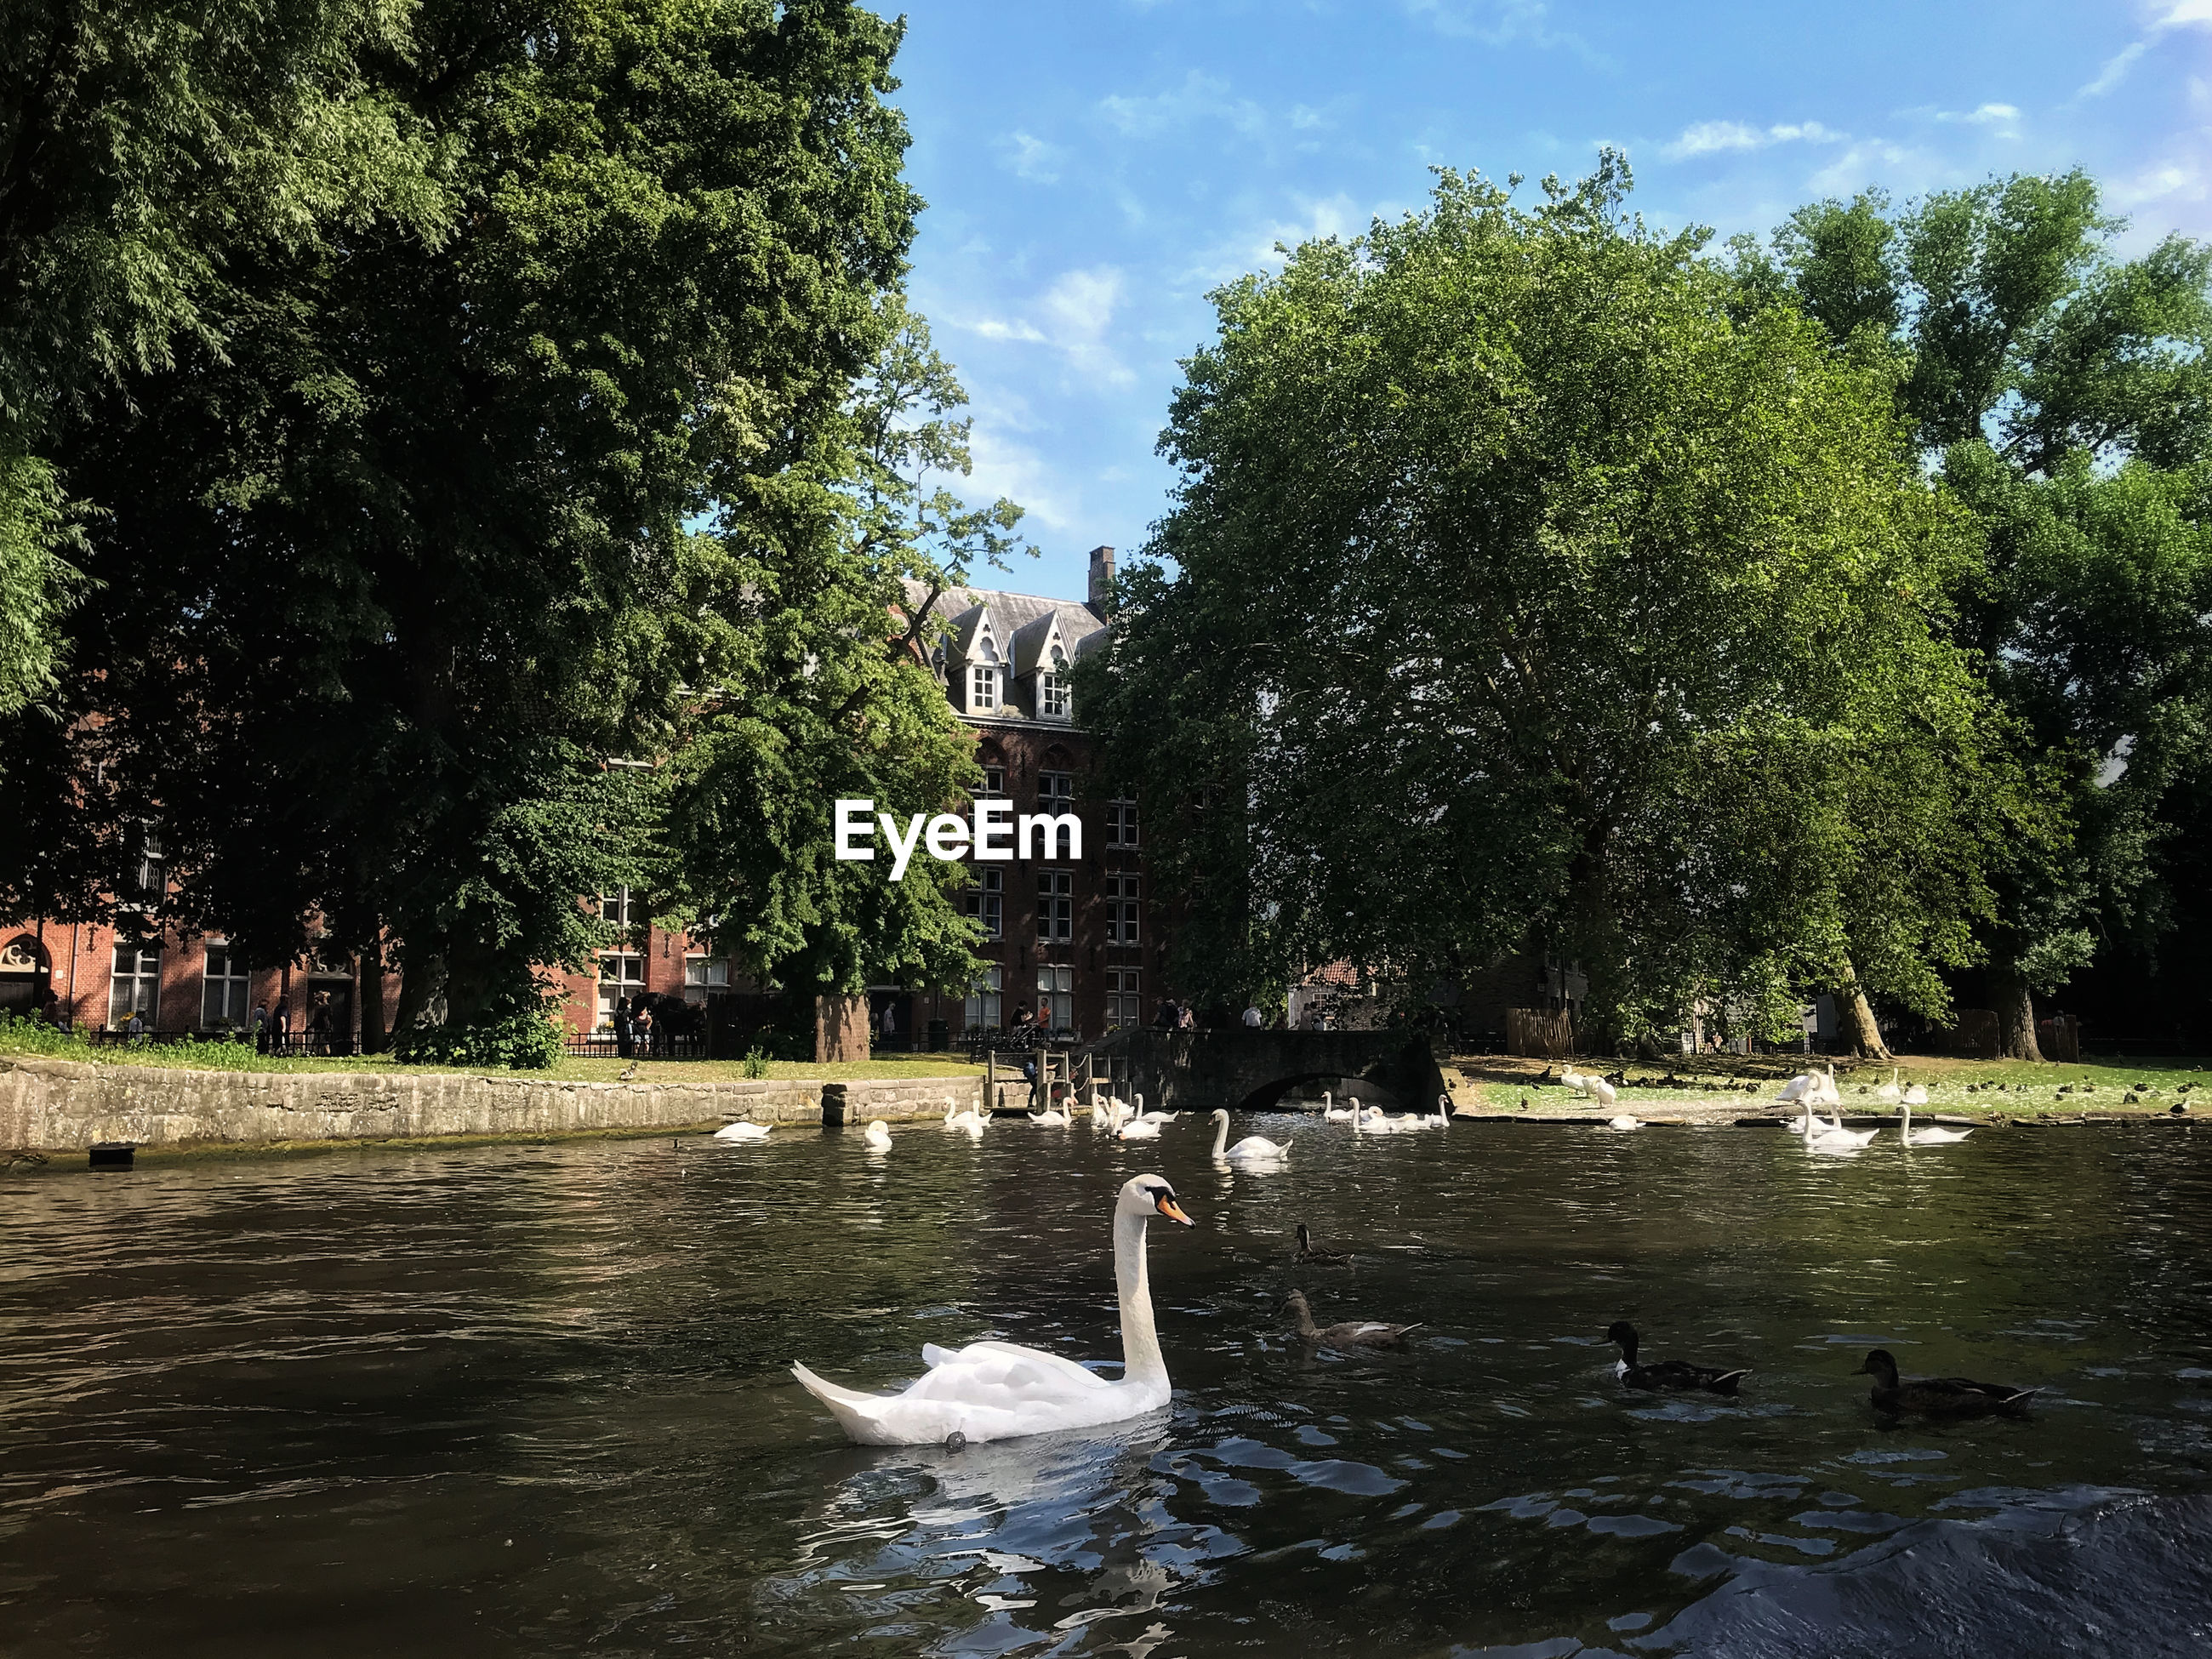 VIEW OF SWAN SWIMMING IN LAKE AGAINST TREES